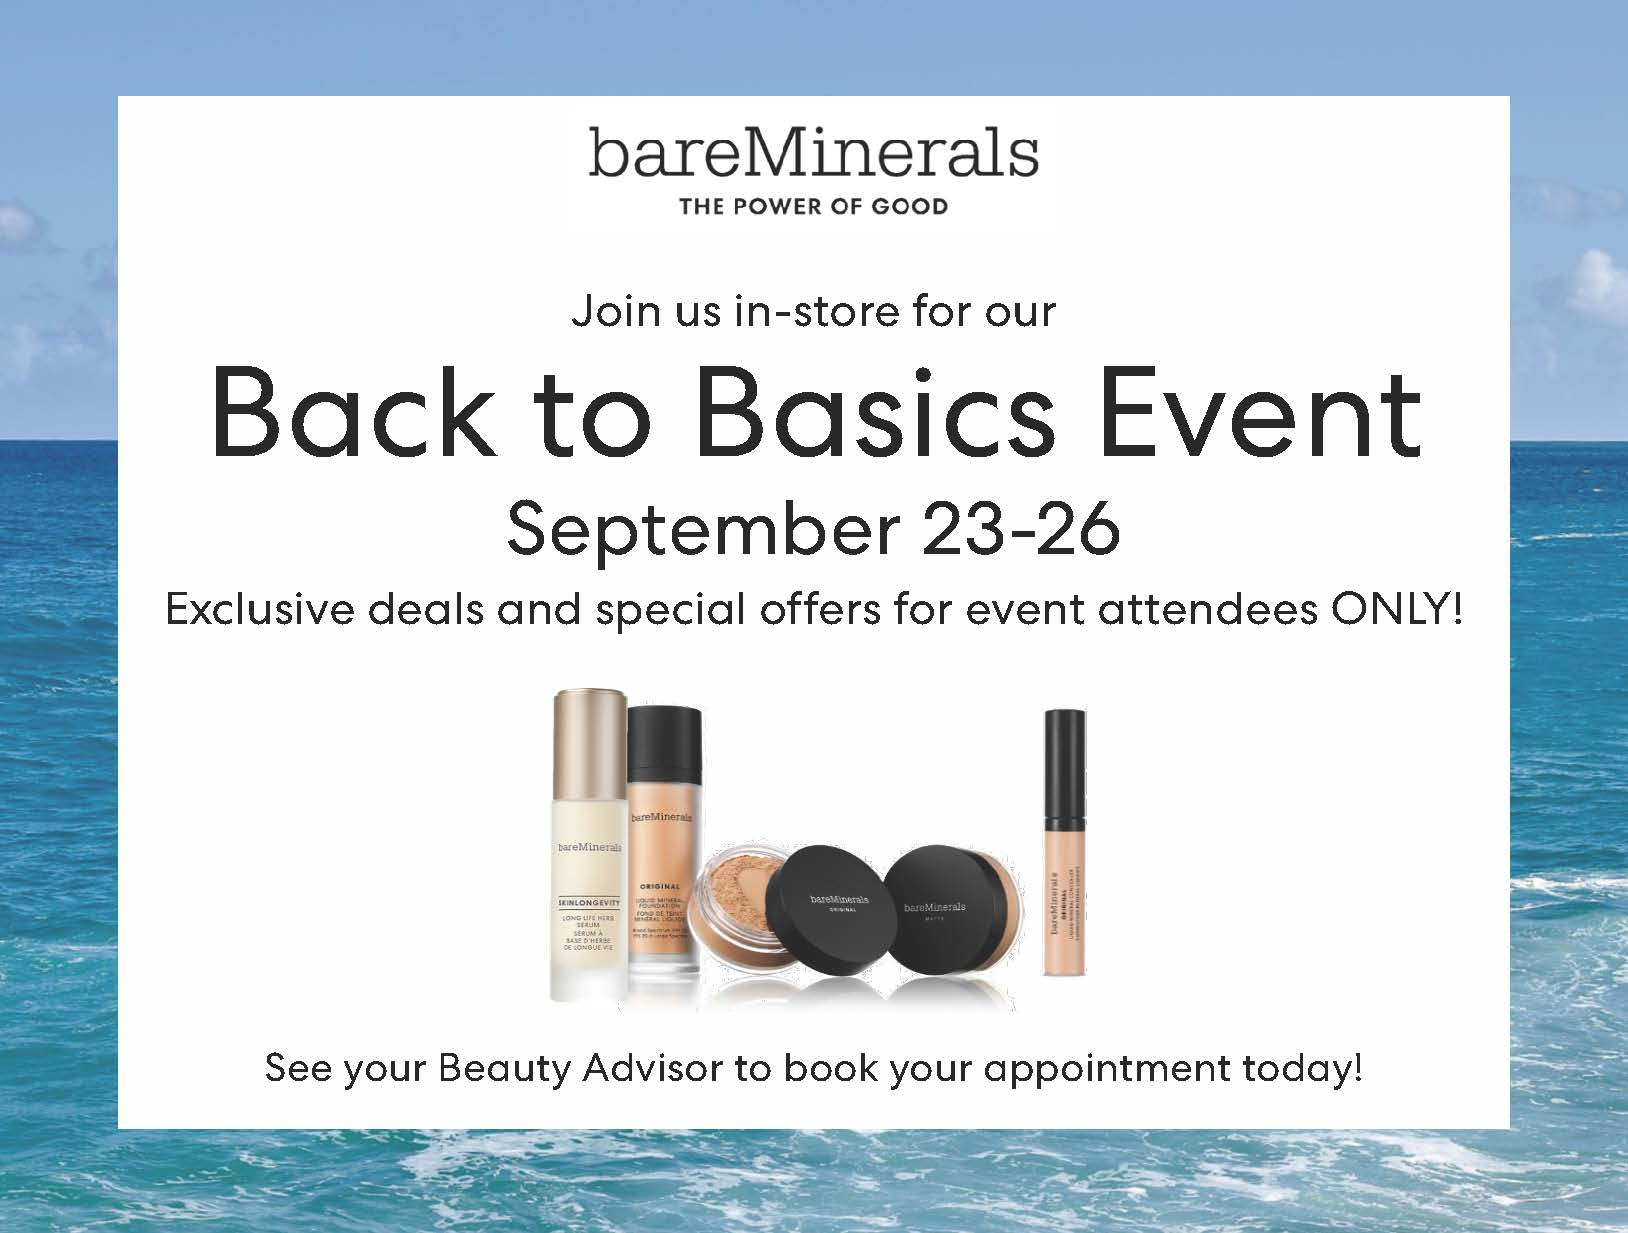 Back to Basics from bareMinerals